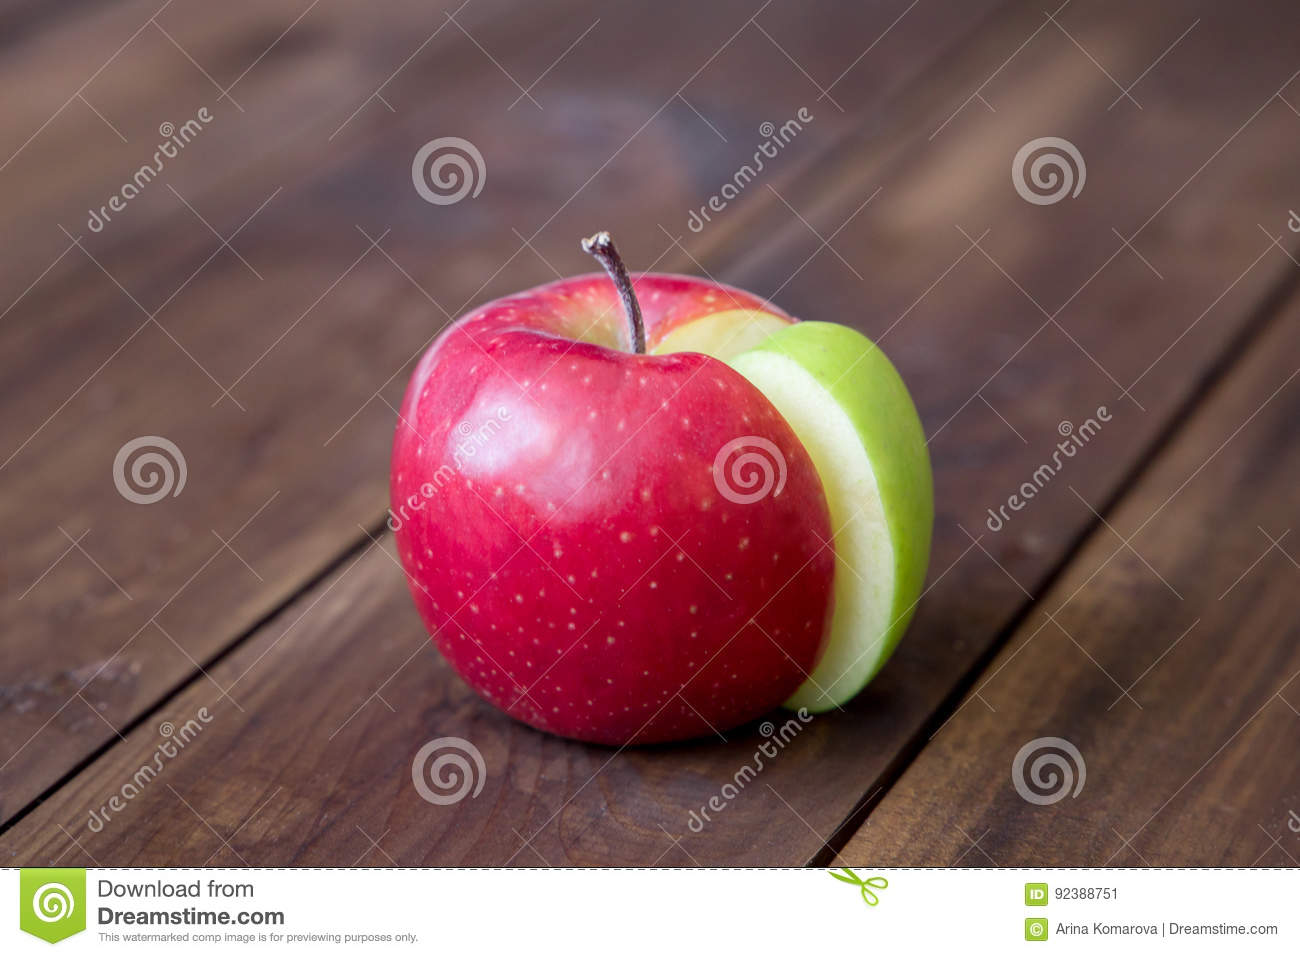 Apple pie chart made from green sector in a red circle stock apple pie chart made from green sector in a red circle delicious illustration nvjuhfo Images